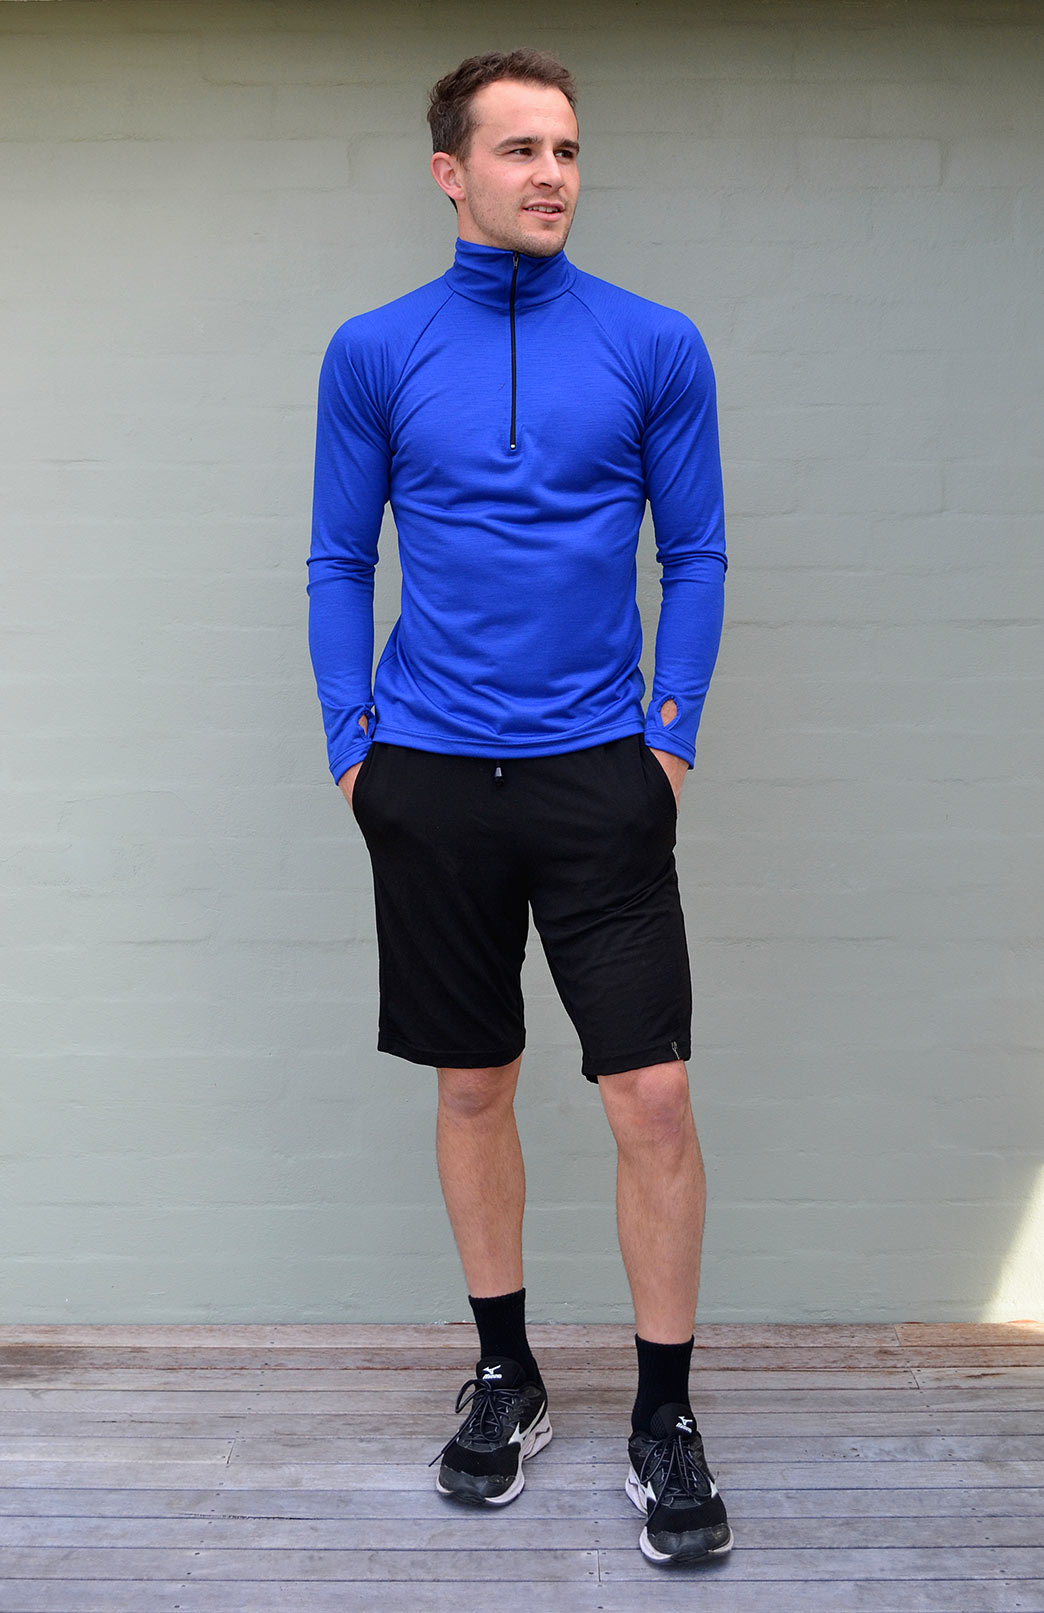 720c7bfaf1 Men's Wool Shorts - Men's Black Merino Wool Sports and Outdoor Shorts -  Smitten Merino Tasmania